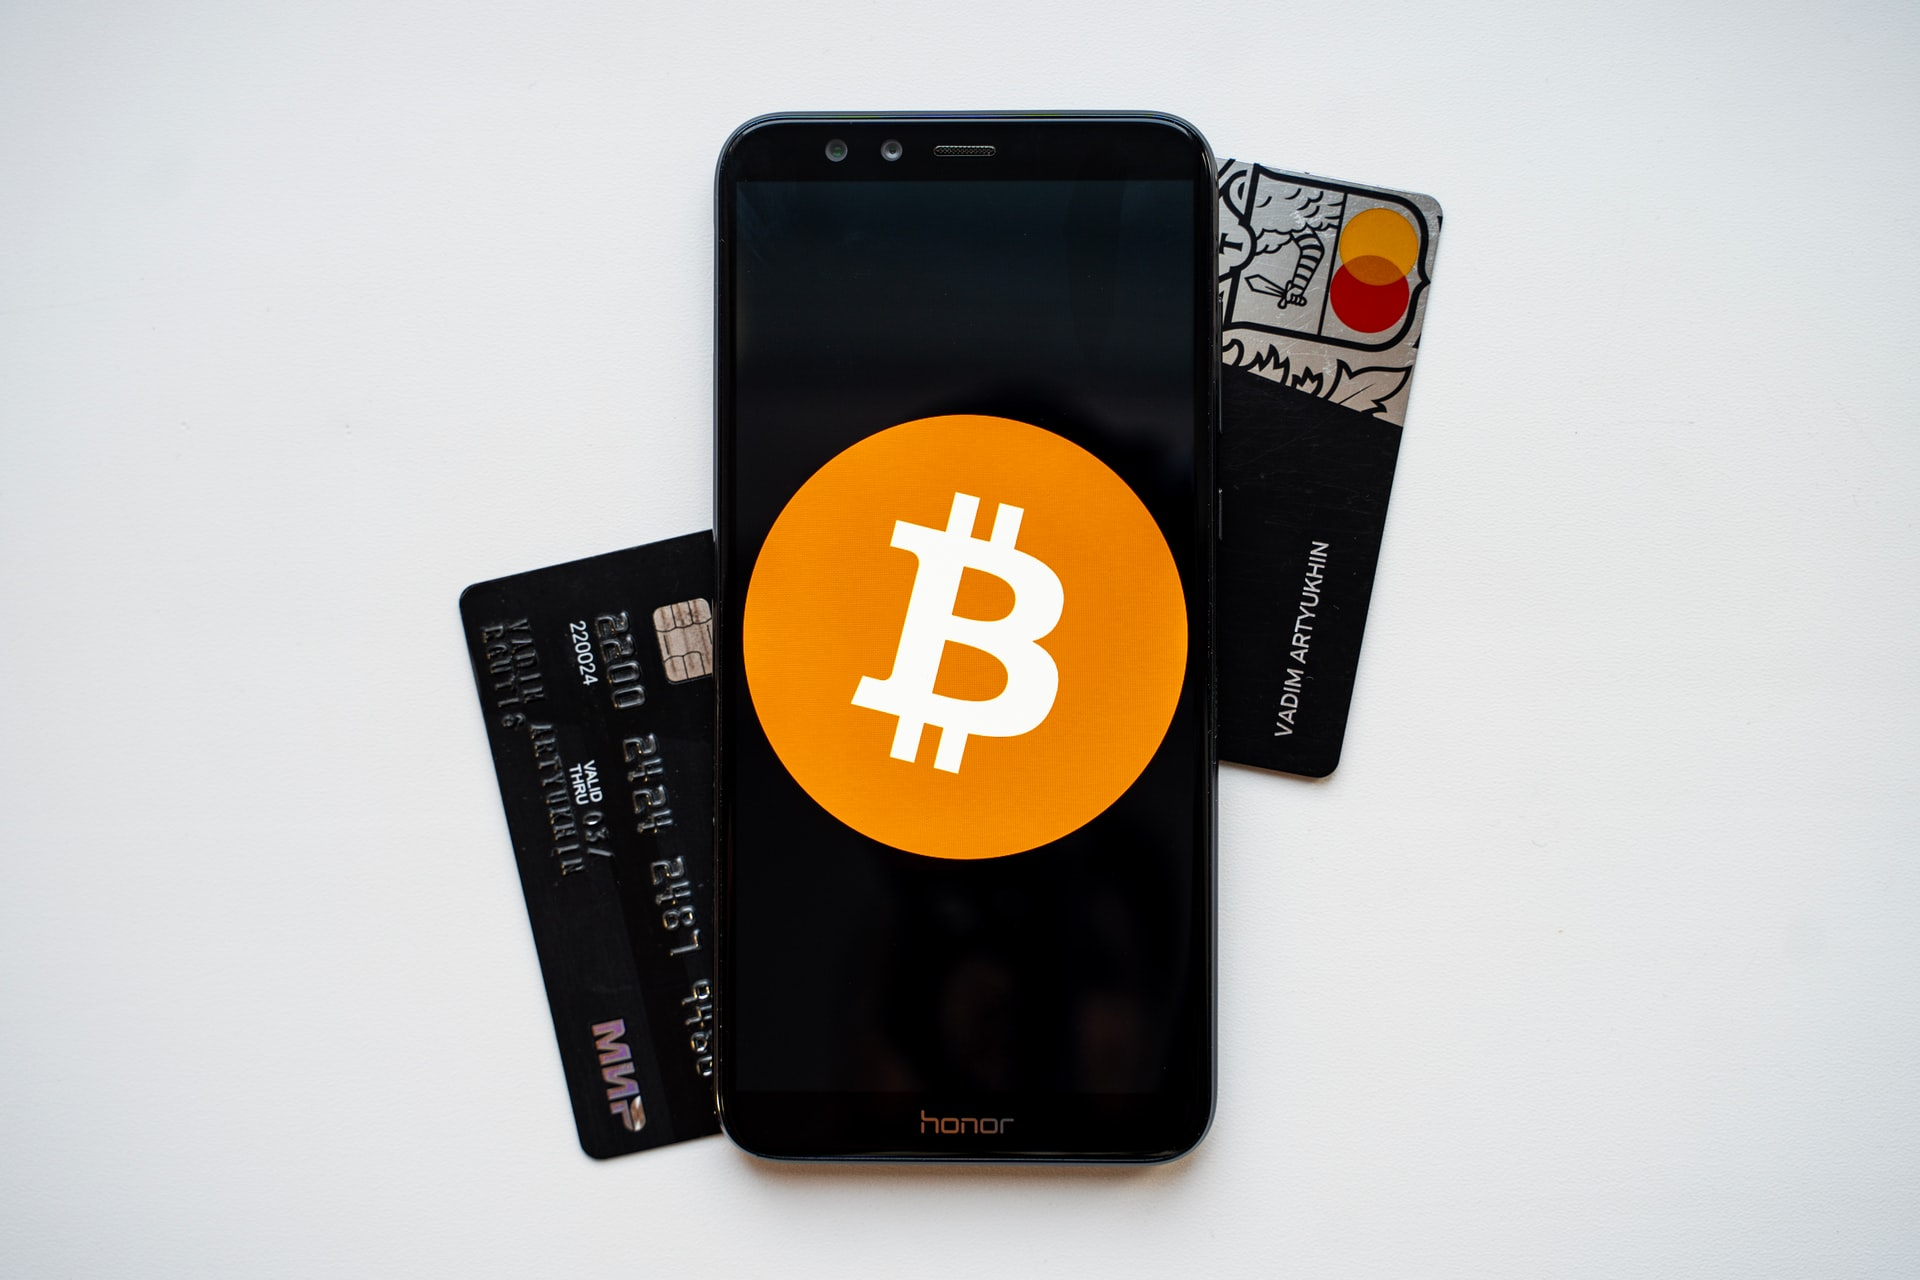 UATP and BitPay Partner; Numerous Airlines and Other Travel-Related Vendors Now Accepting Cryptocurrency